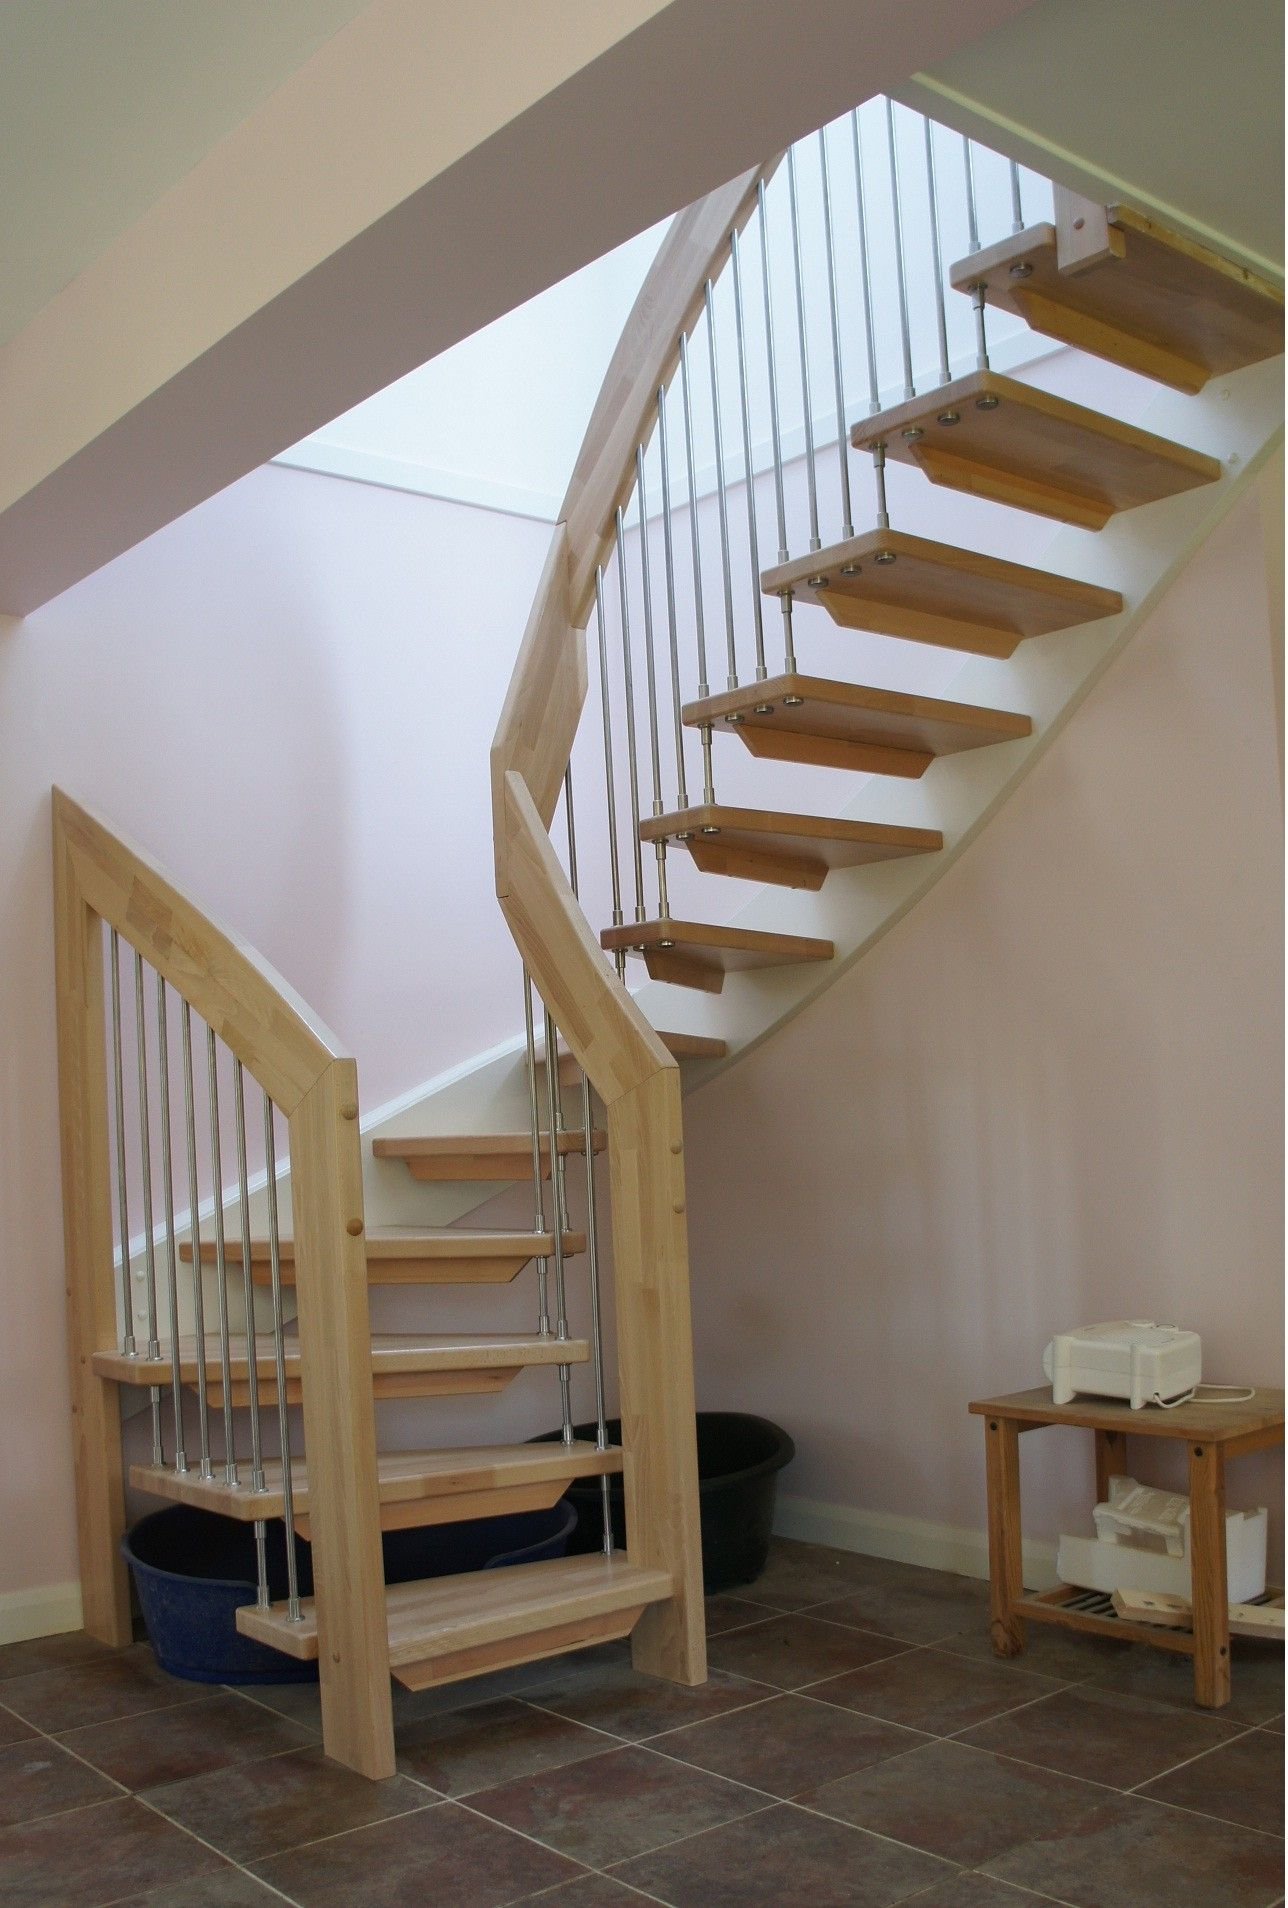 Simple Stairs Design Simple Design Ideas Of Small Space Staircase With Brown